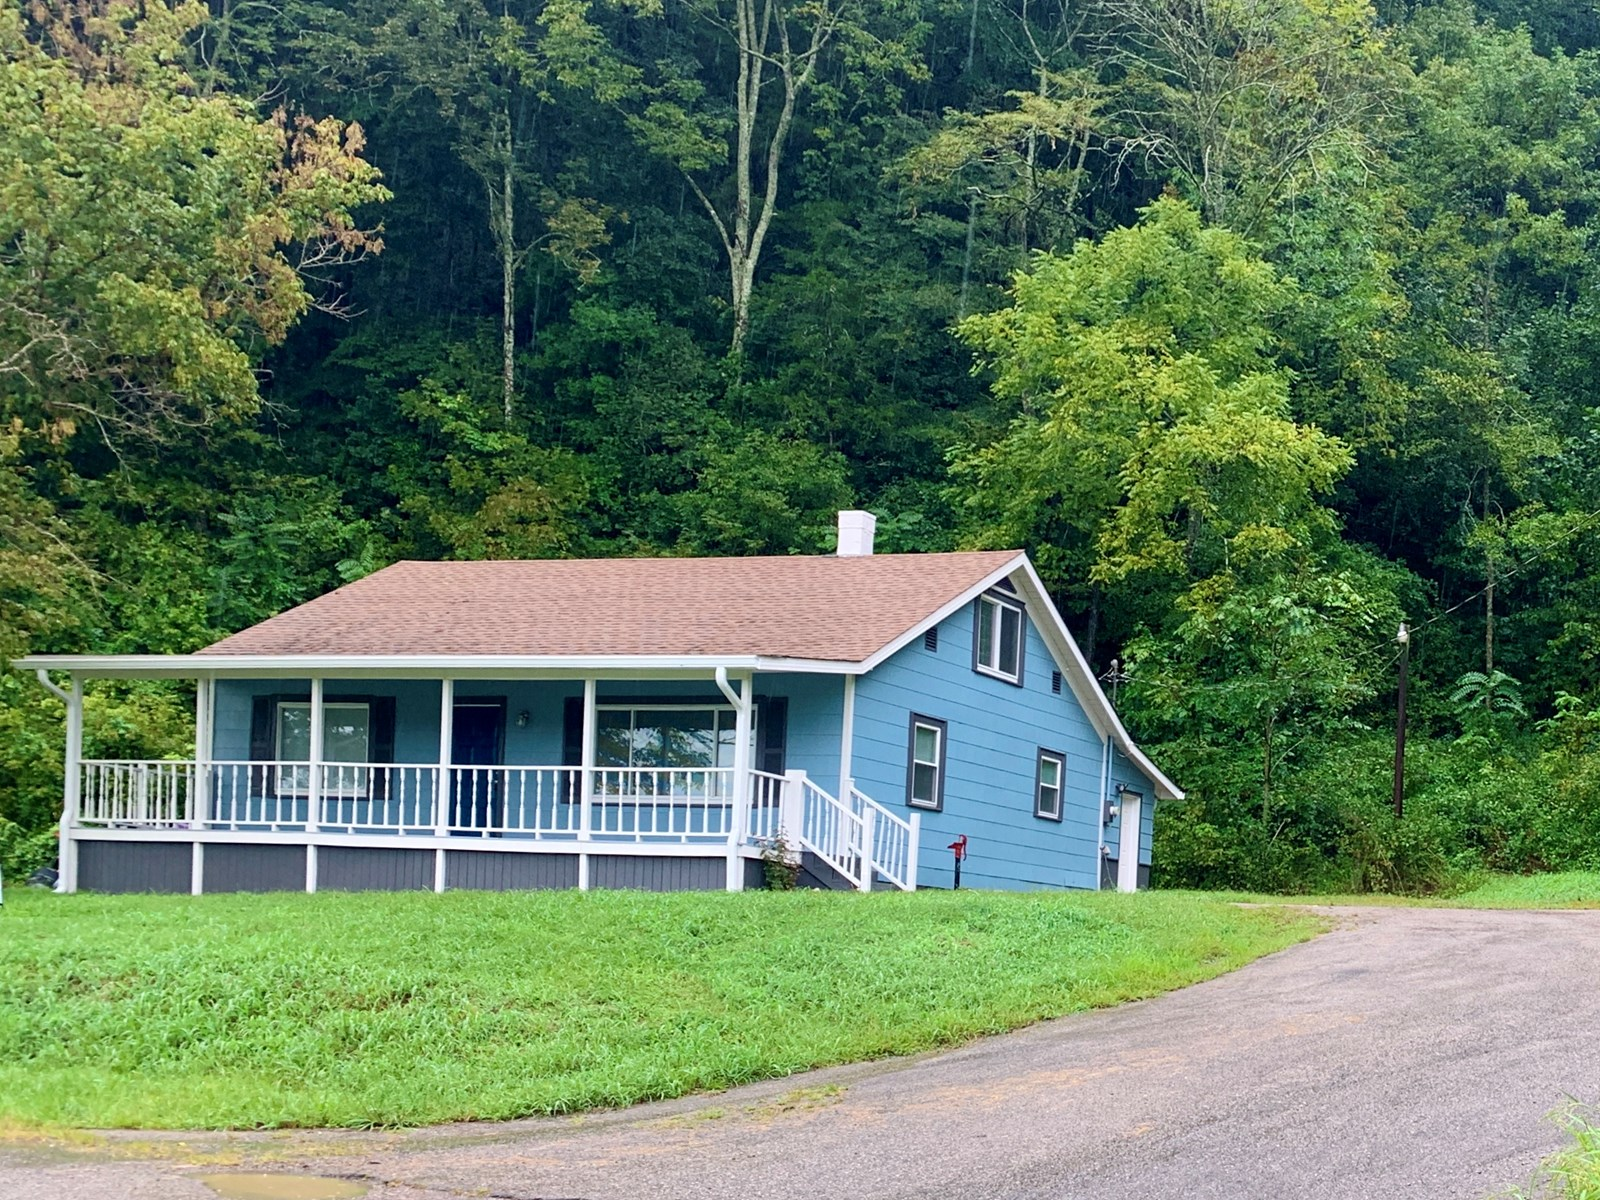 Pending Country Home With Acreage